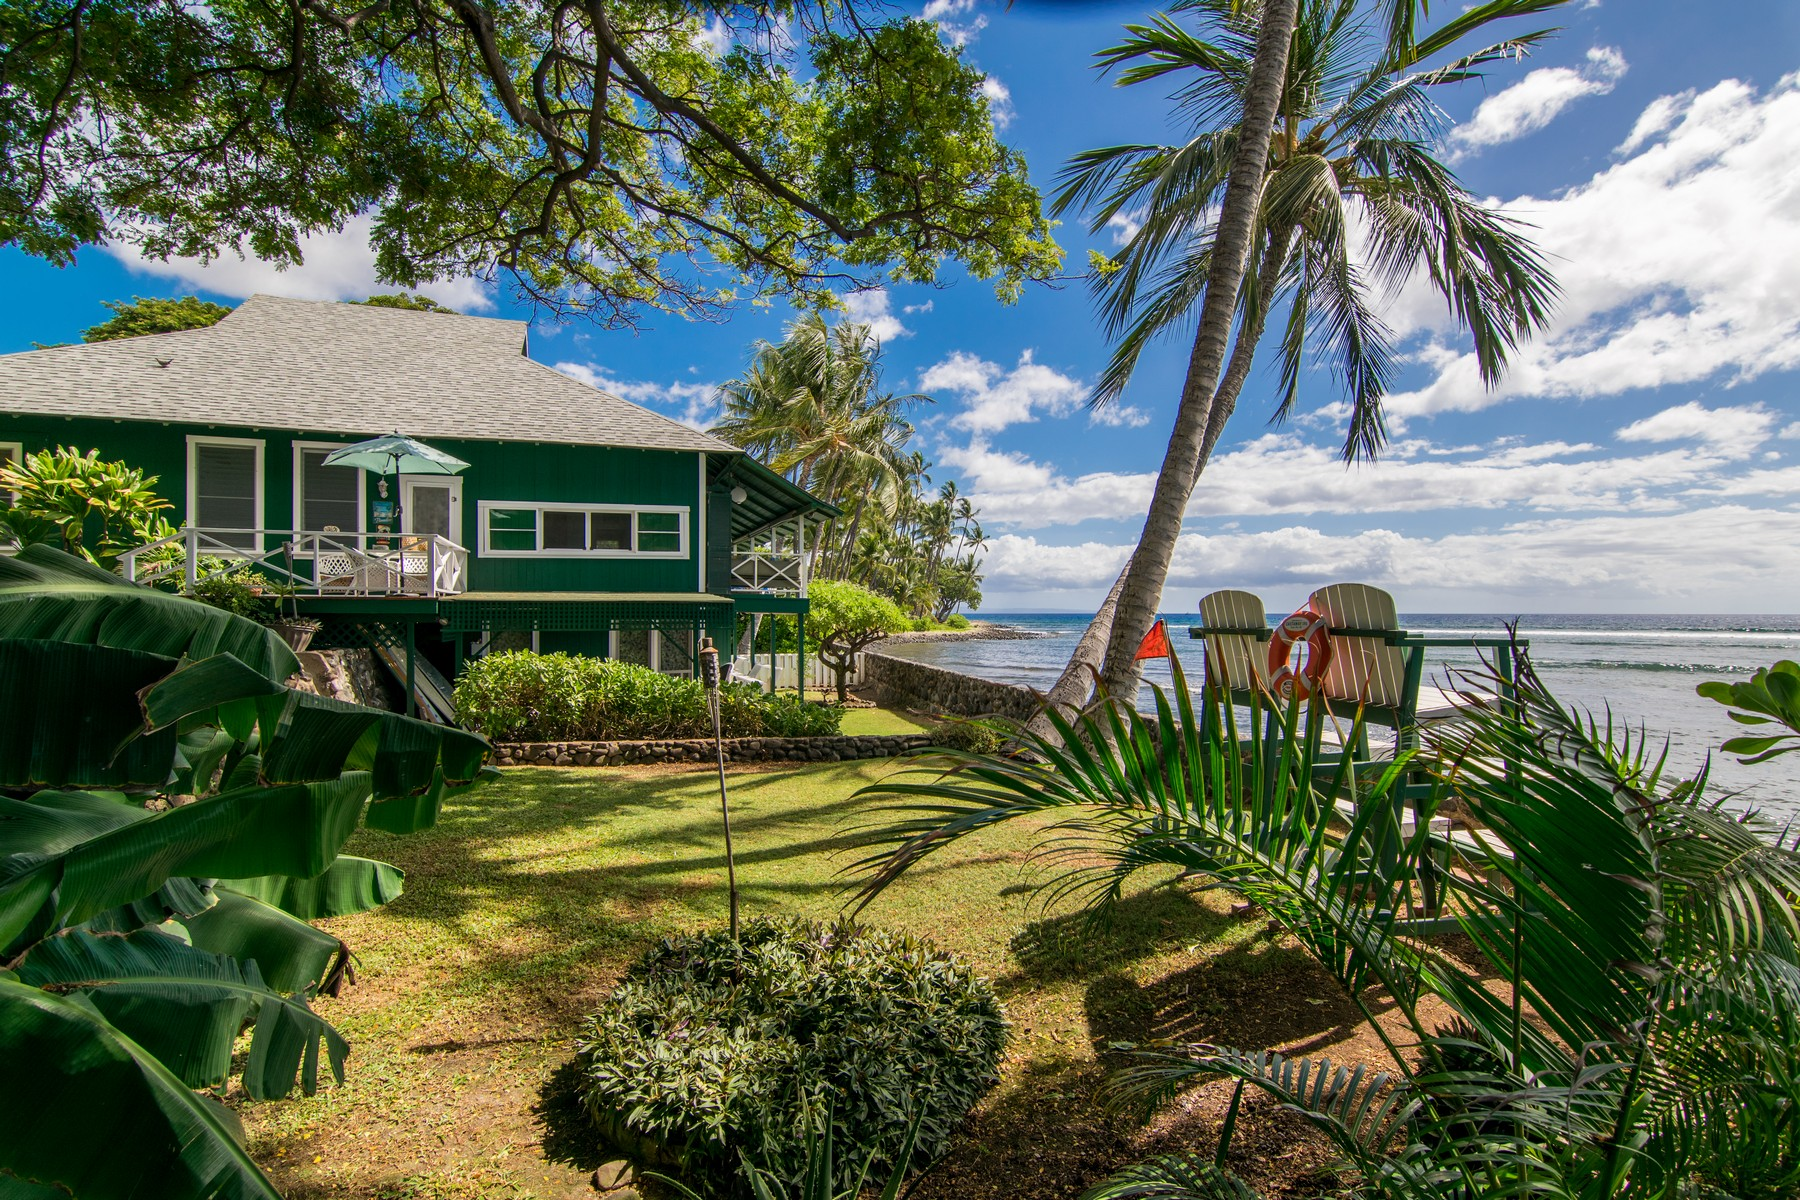 Single Family Home for Sale at Classic Coastal Living 239 Front Street Lahaina, Hawaii 96761 United States